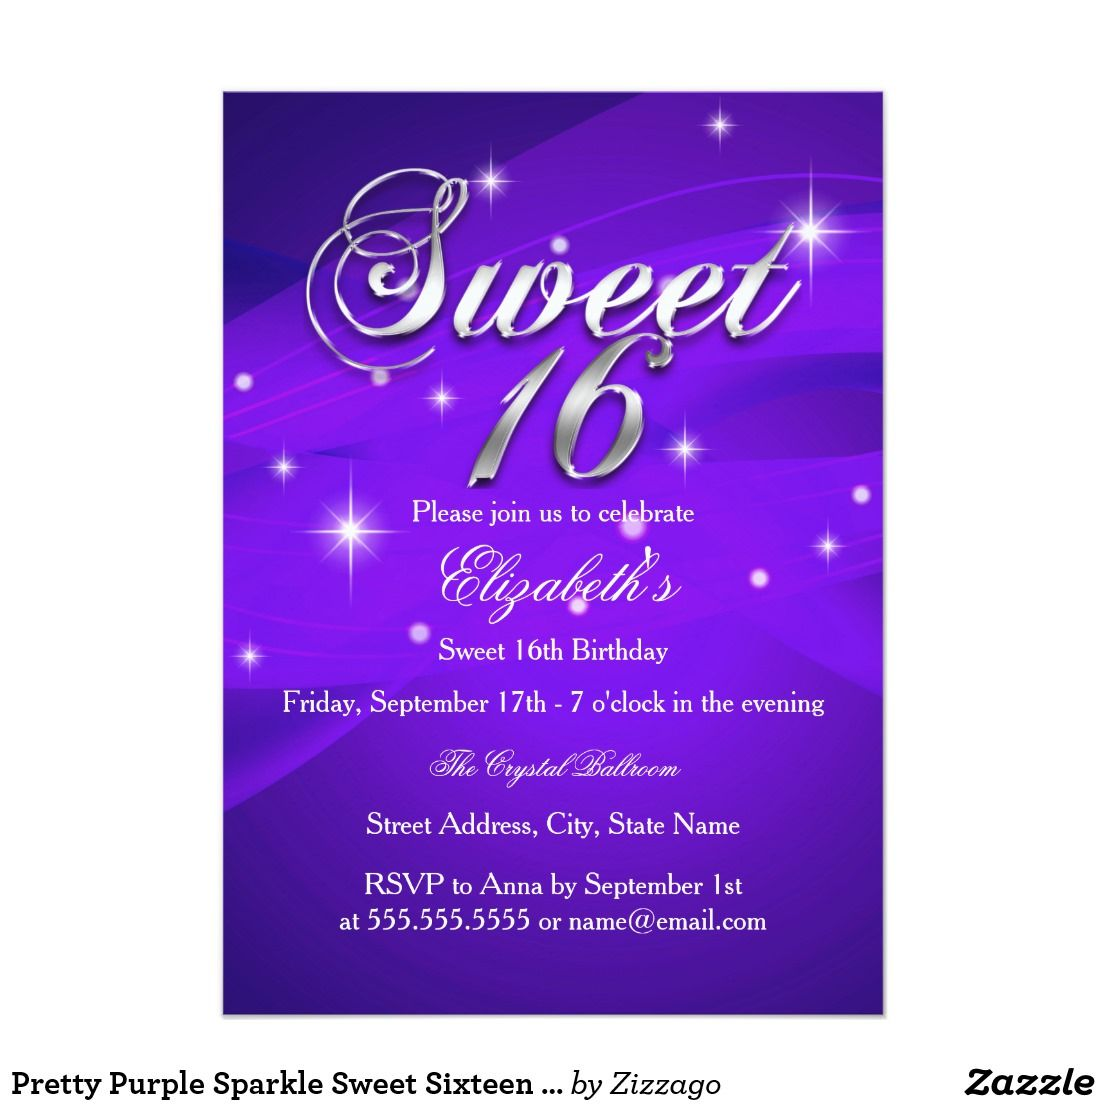 Pretty purple sparkle sweet sixteen invitation sweet sixteen pretty purple sparkle sweet sixteen invitation sweet sixteen invitation purple sparkle swirl please note stopboris Images